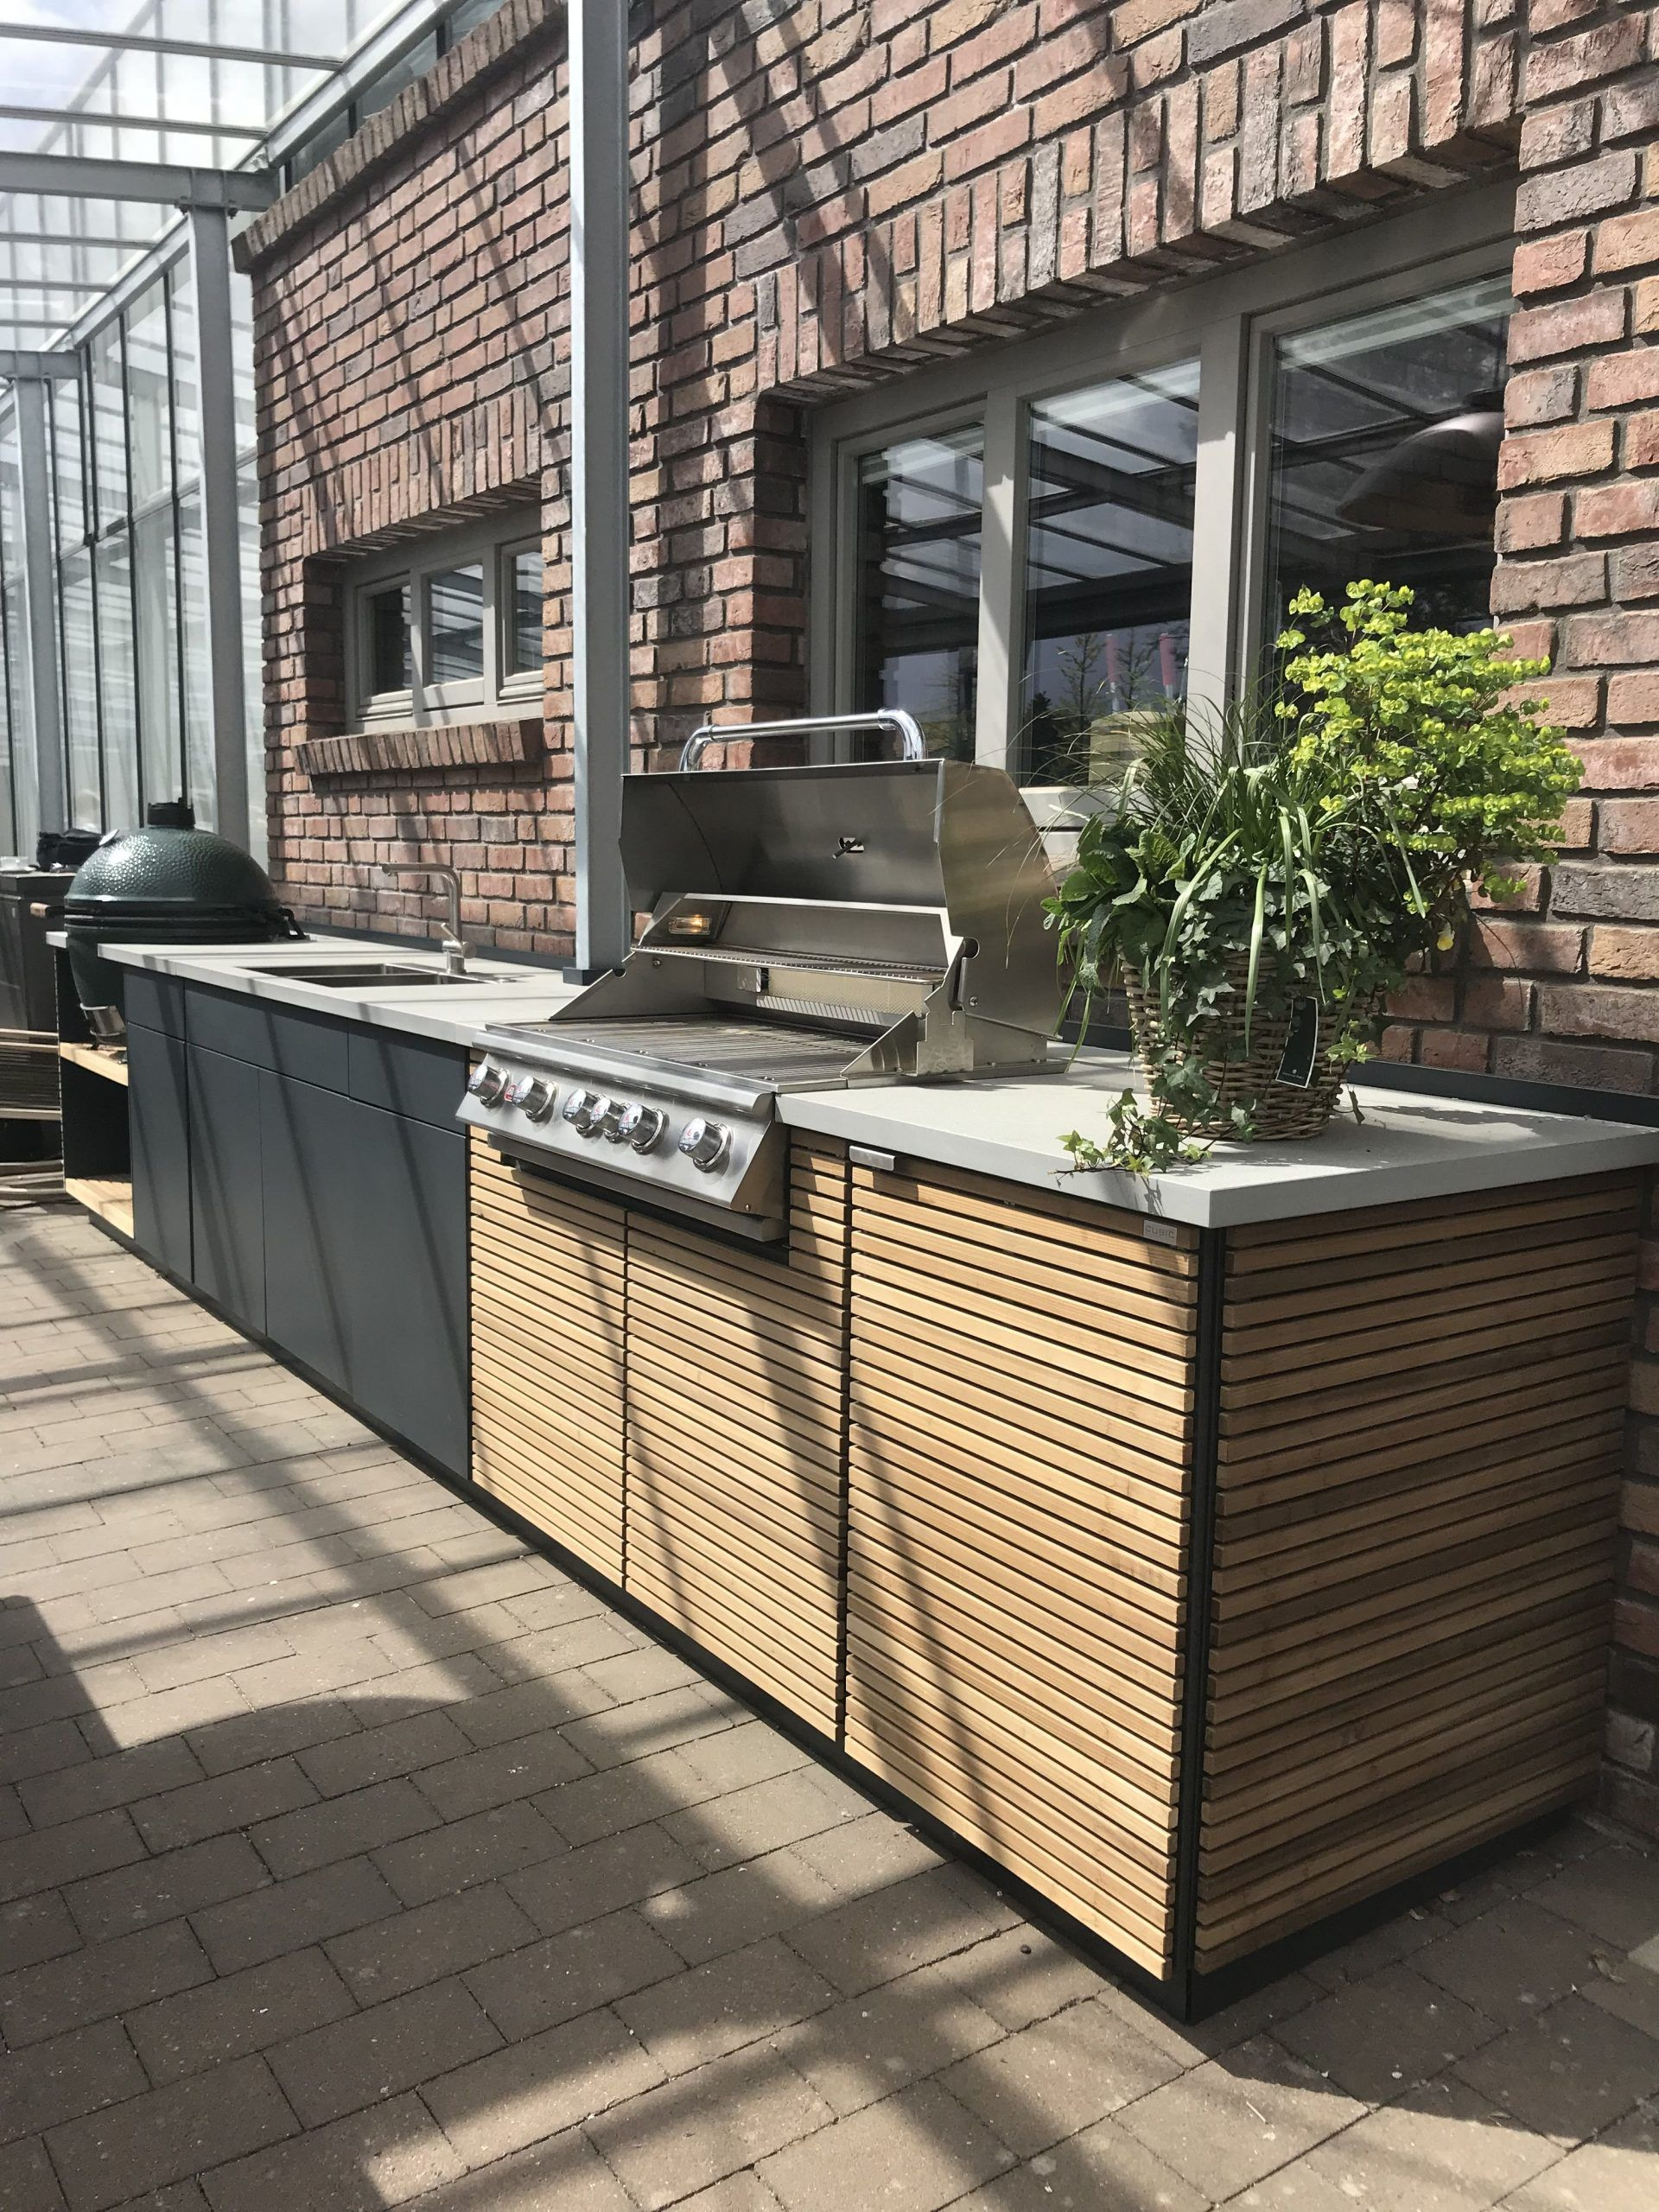 Outdoor Küche Mit Big Green Egg Big Egg Green Mit Outdoorkuche Big Green Egg Outdoor Kitchen Outdoor Kitchen Design Big Green Egg